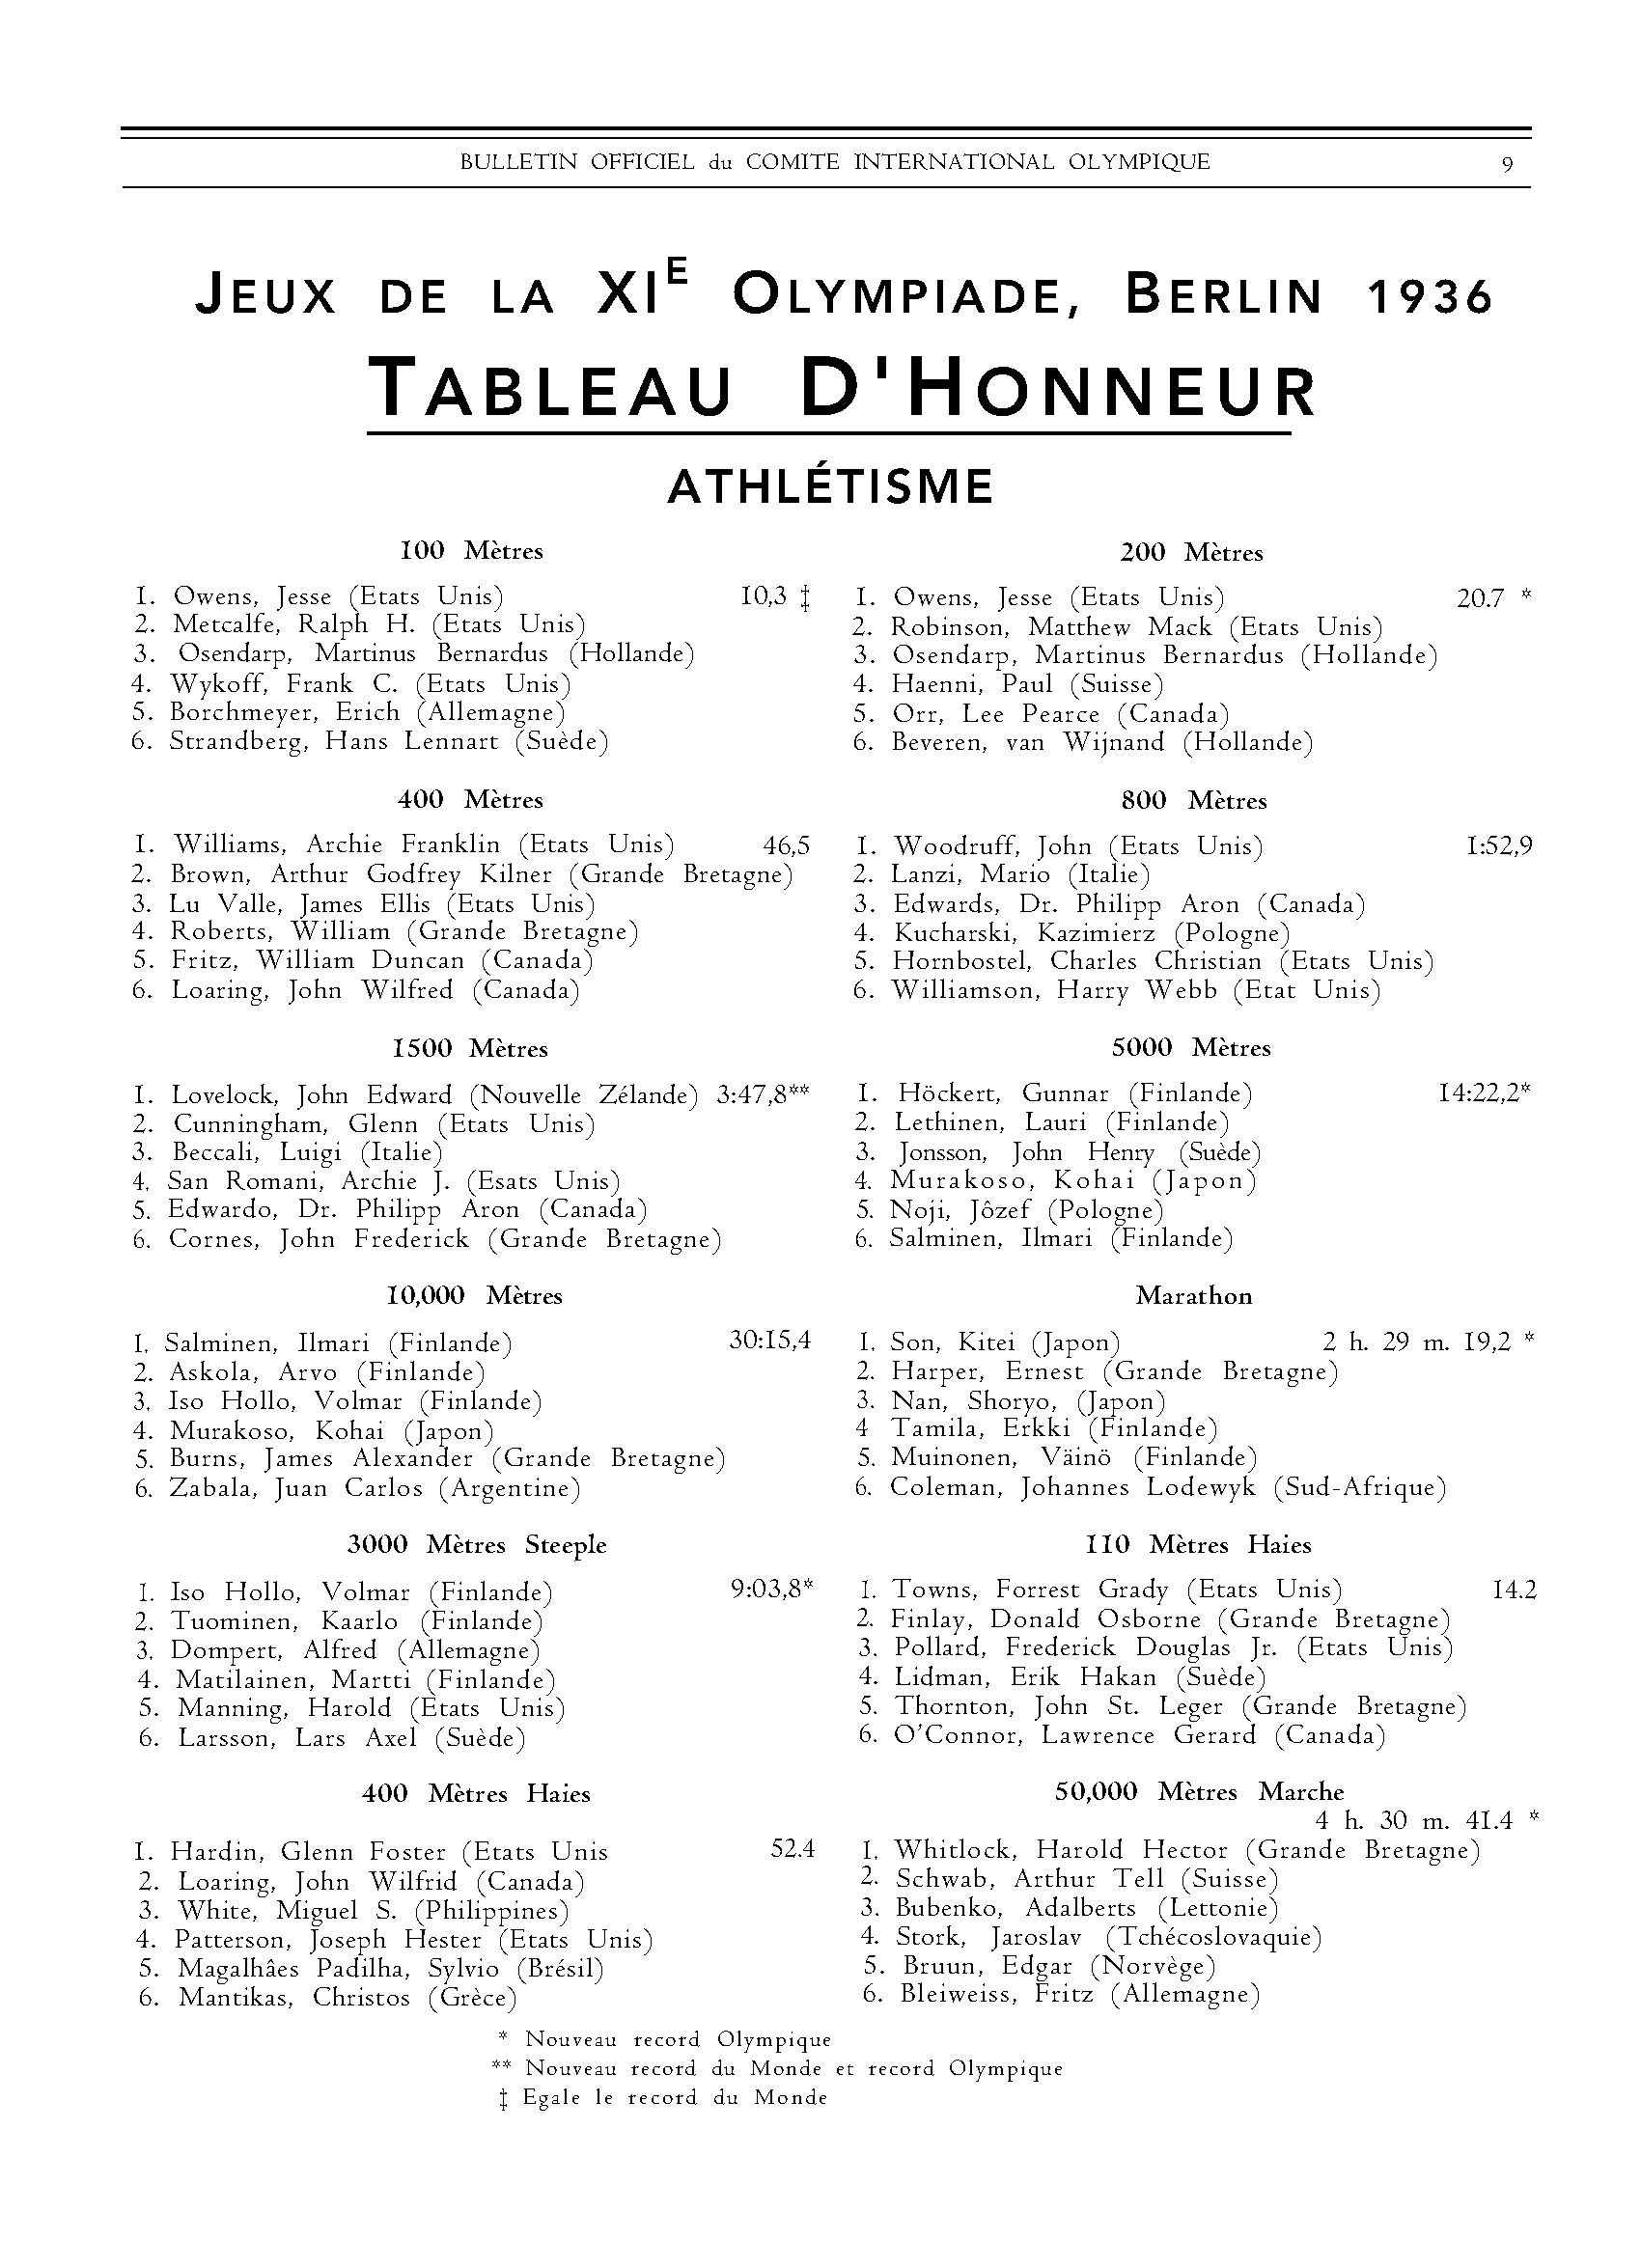 Jeux De La Xie Olympiade Berlin 1936 Tableau Dhonneur Games Of The Xith Olympiad Berlin 1936 Table Of Honor Olympic Review Revue Olympique Collection La84 Digital Library